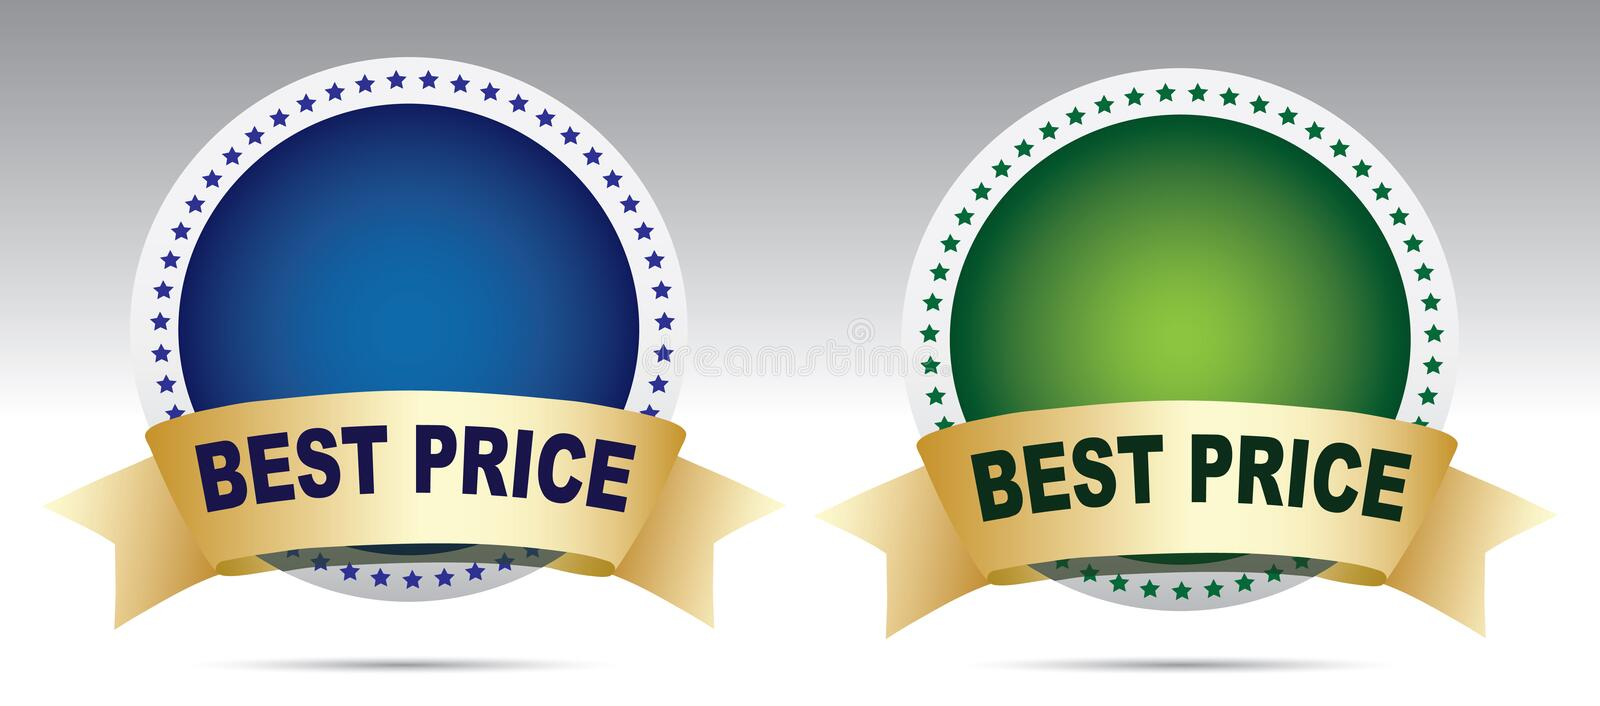 Labels- Best Price Royalty Free Stock Images